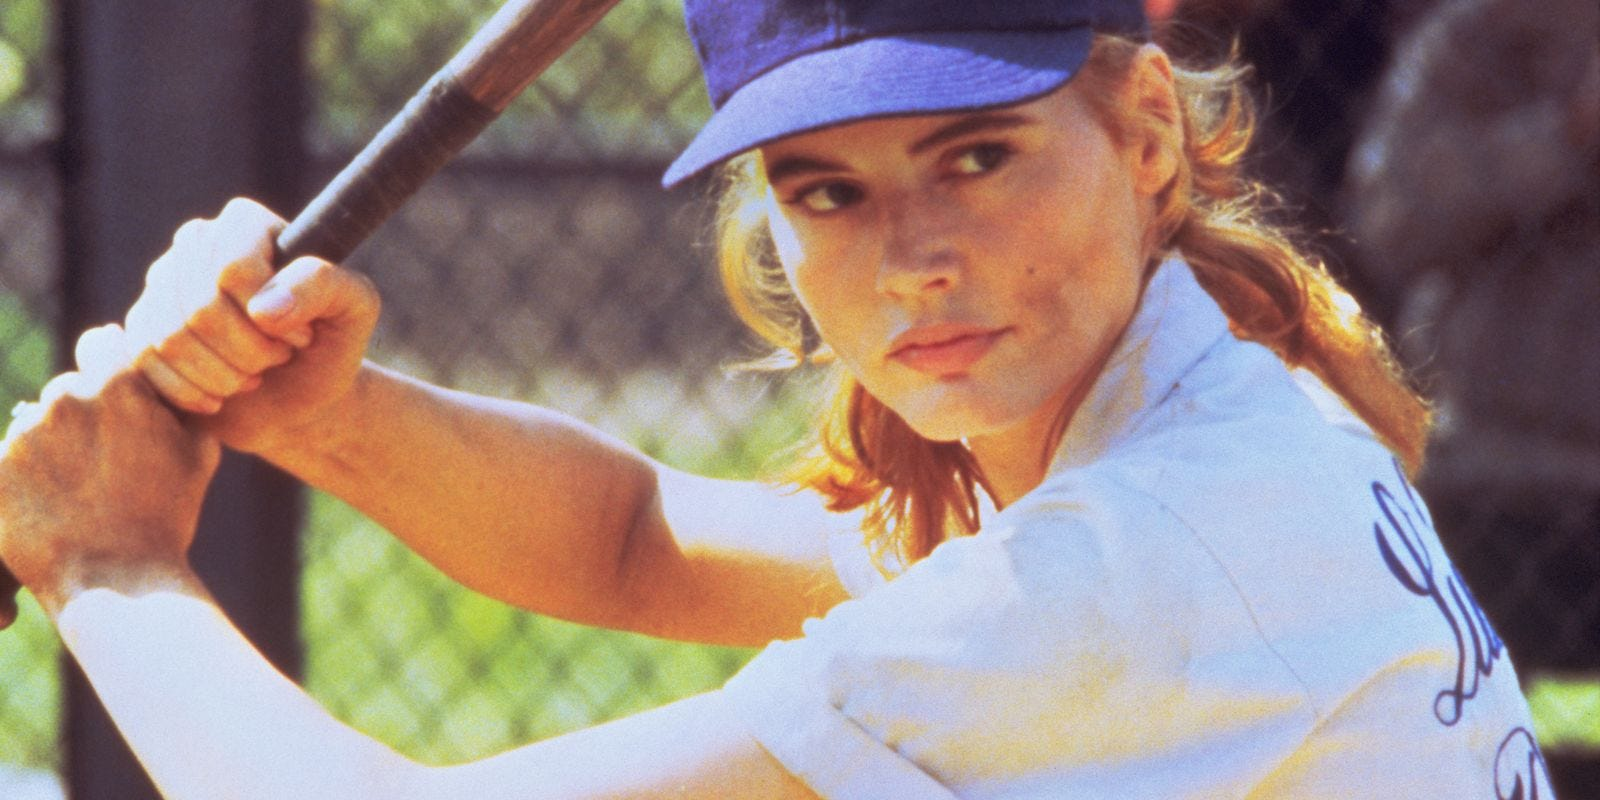 Still shot from the movie: A League Of Their Own.